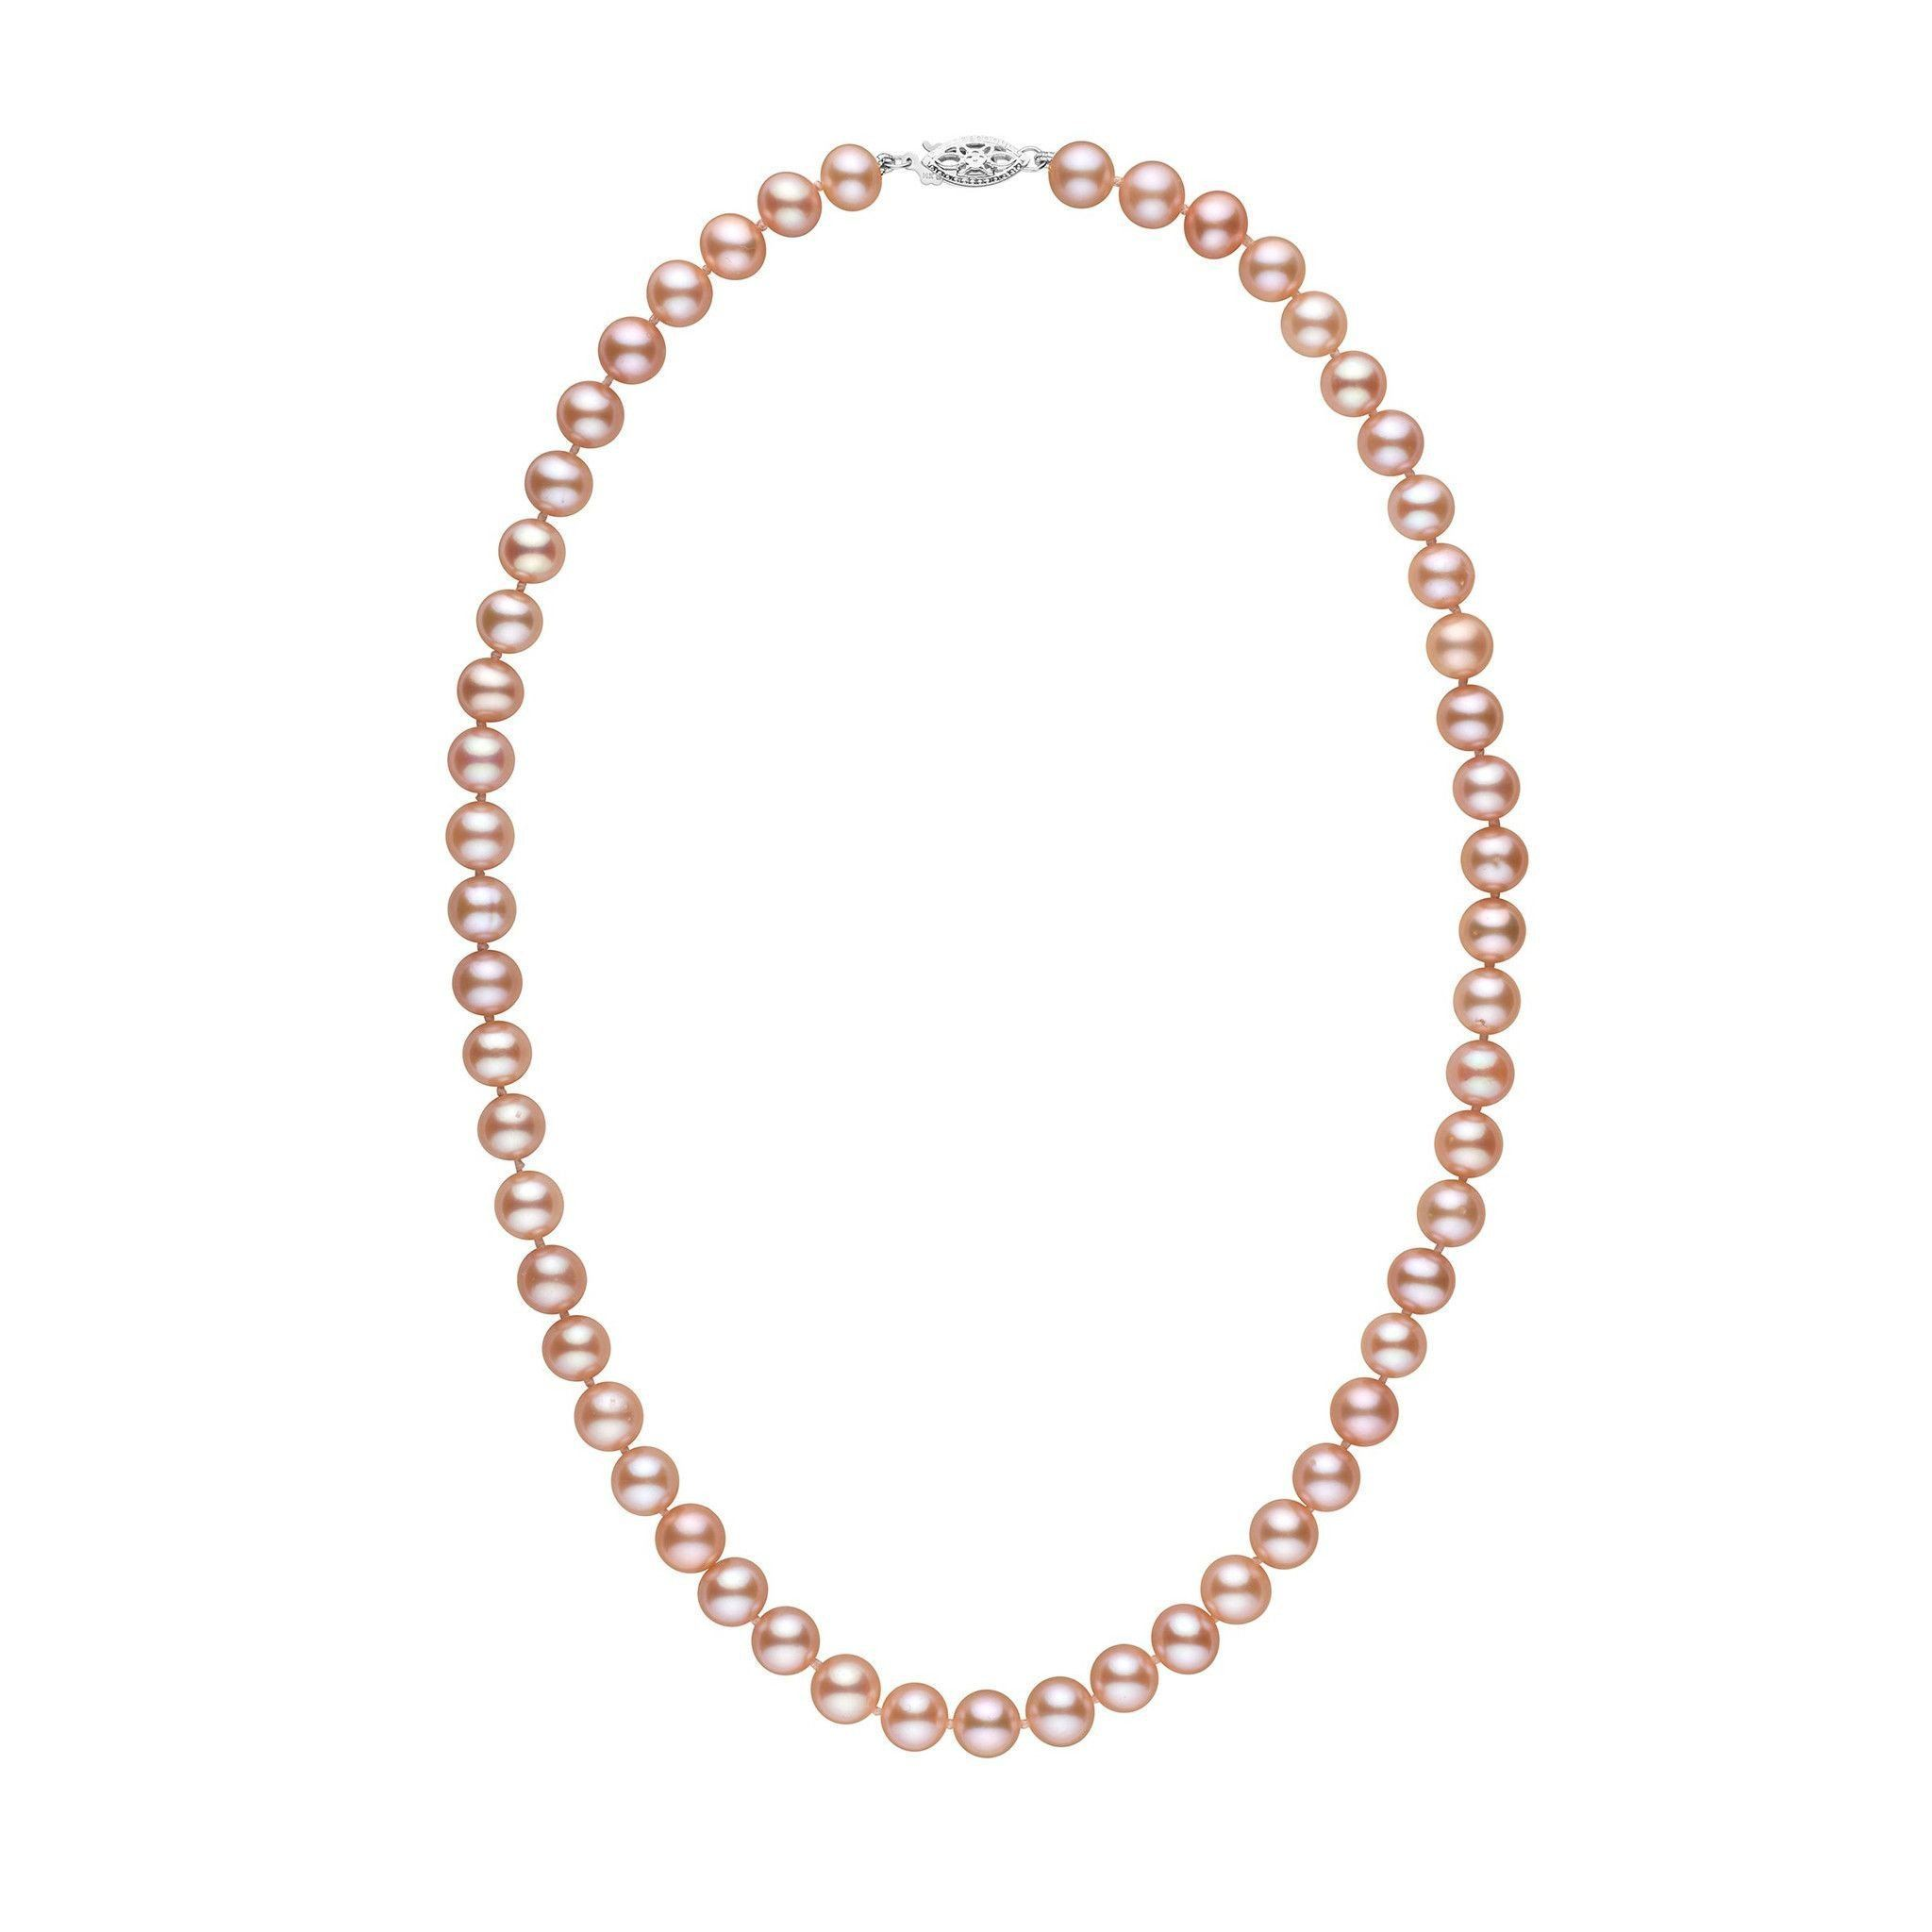 7.5-8.0 mm 18 Inch AA+ Pink to Peach Freshwater Pearl Necklace